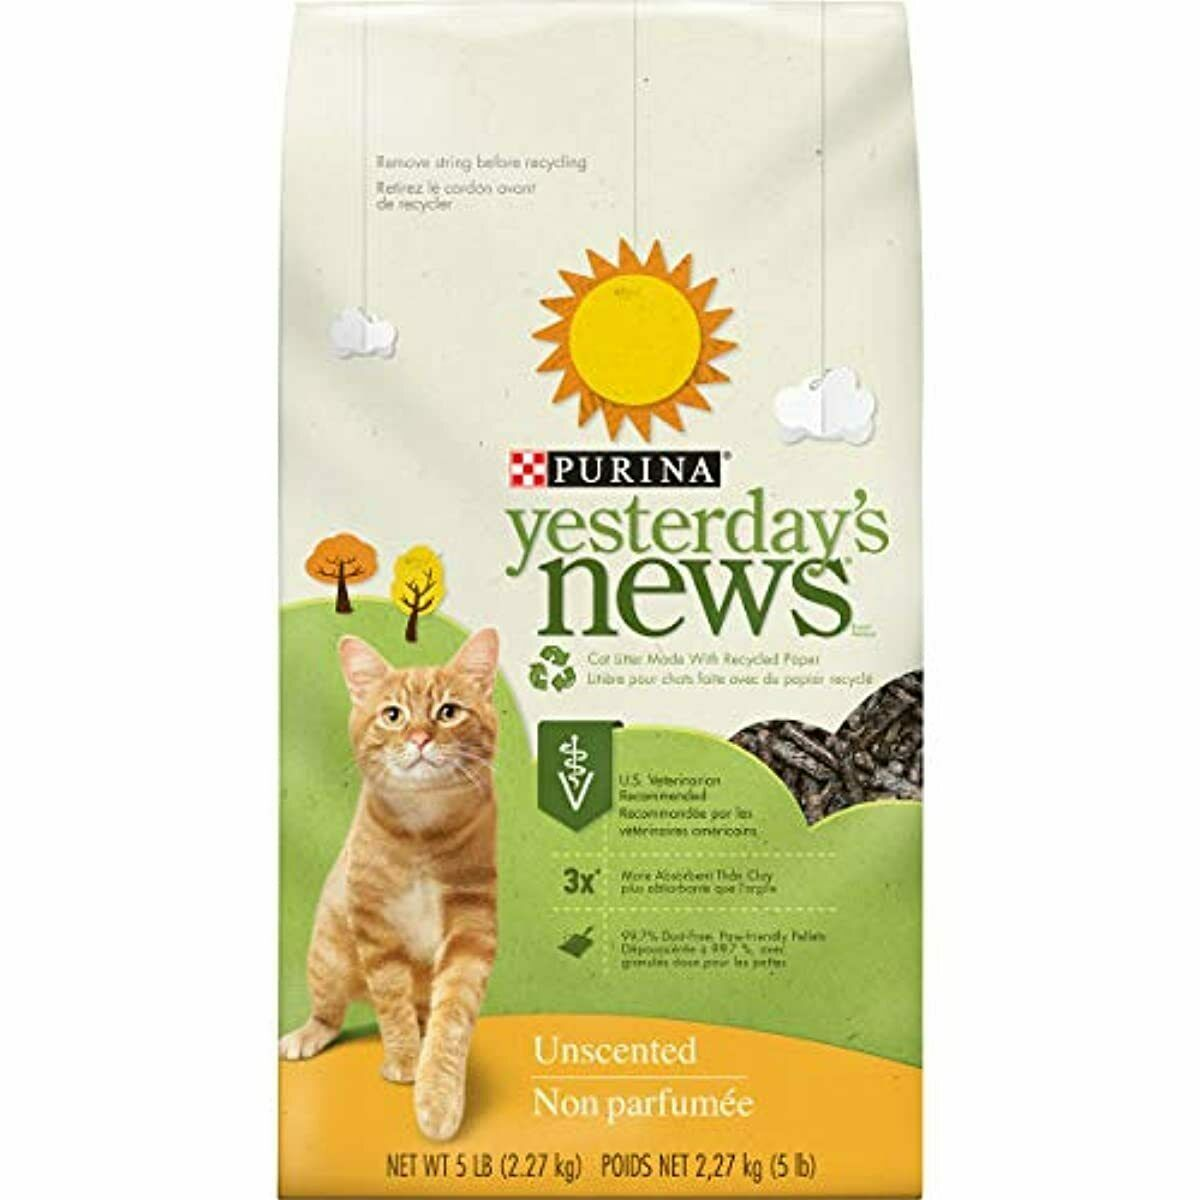 Purina Yesterday's News Unscented Paper Cat Litter